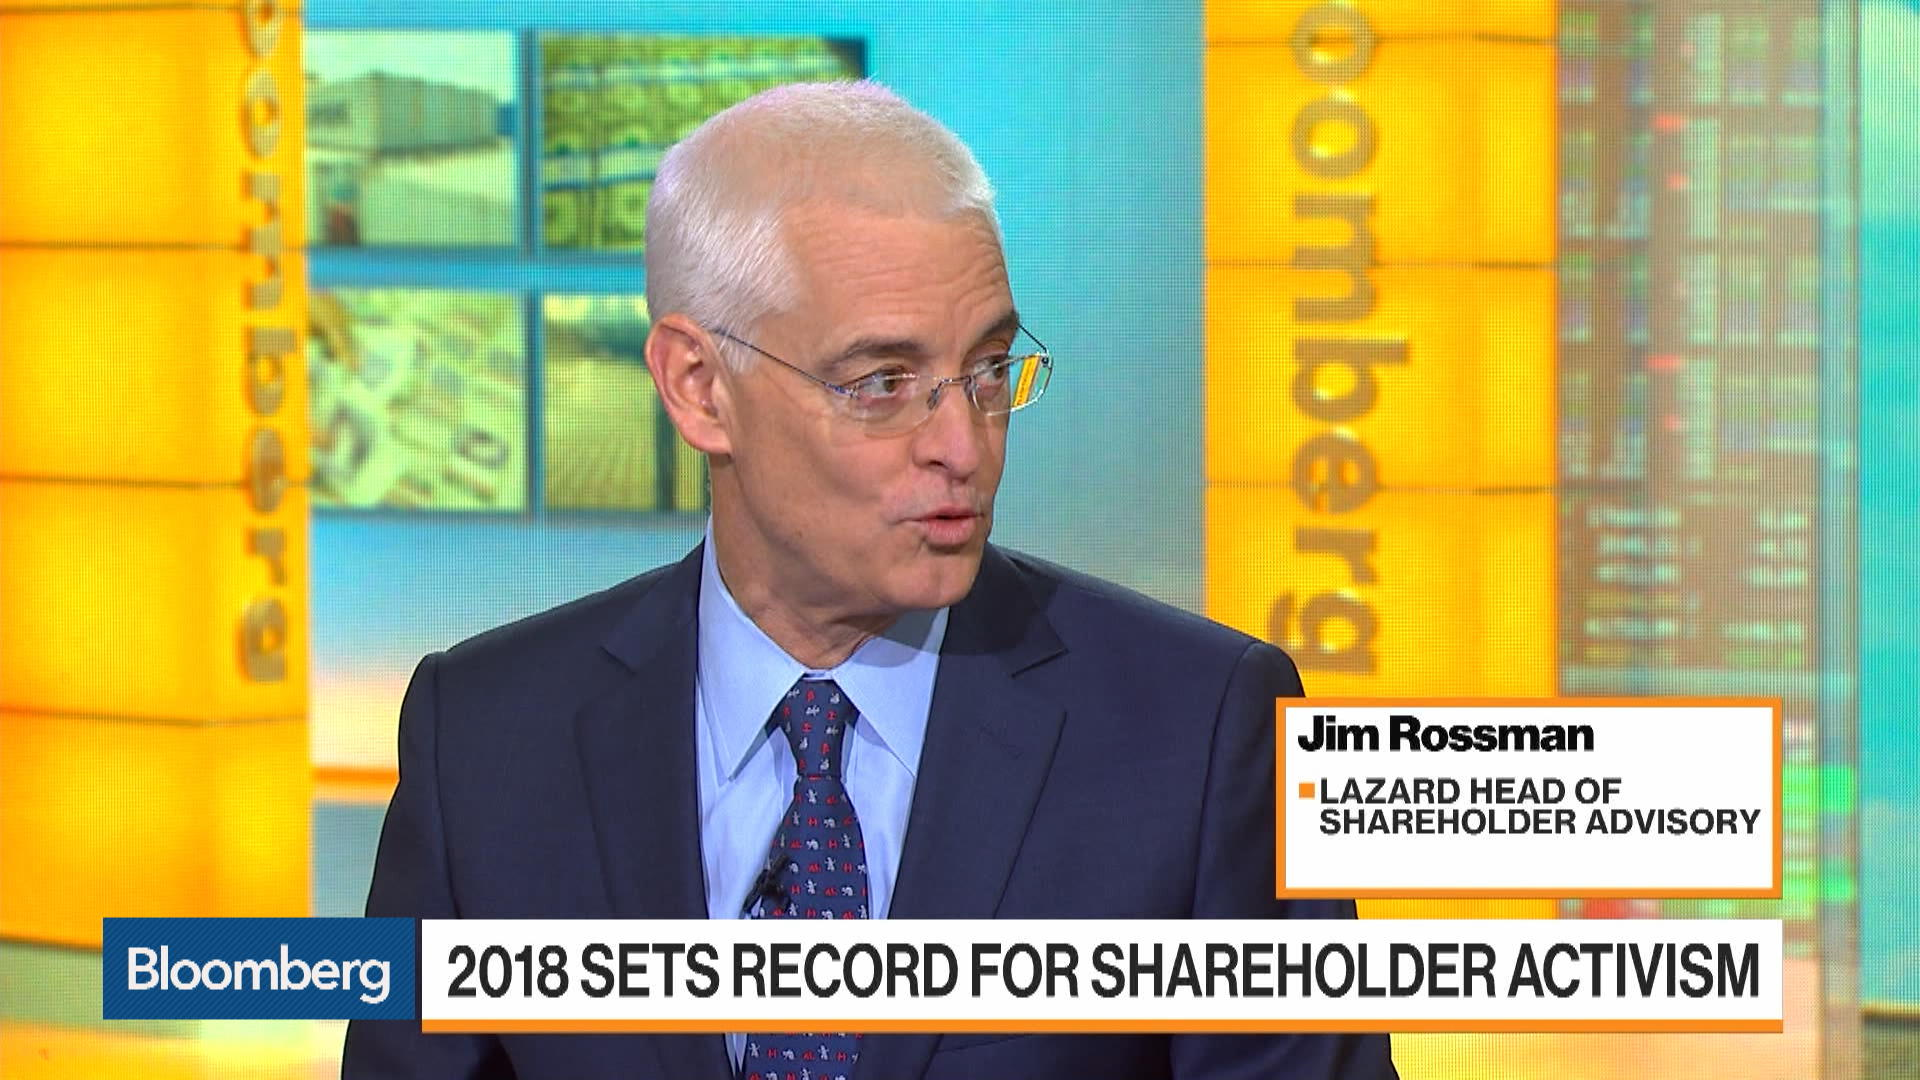 Why 2018 Was Record Year for Shareholder Activism